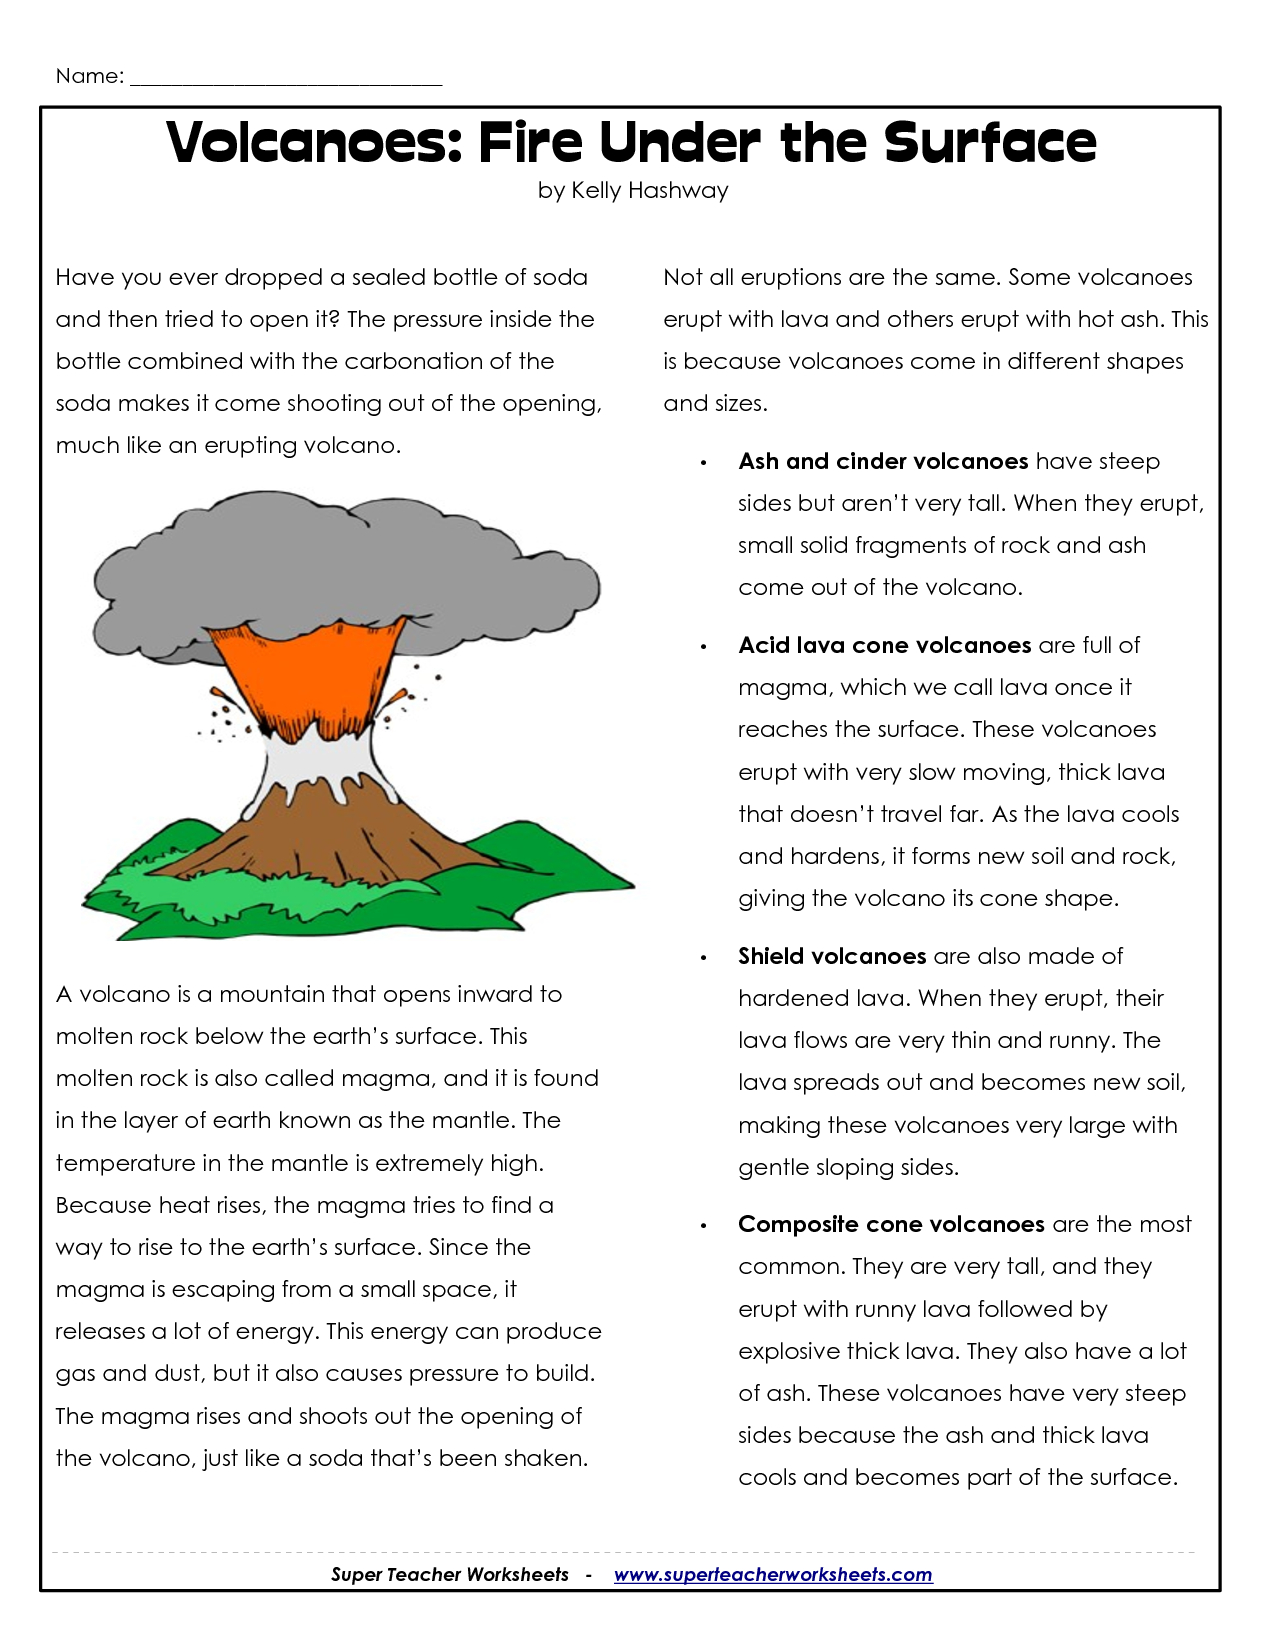 Parts Of A Volcano Printable | Volcano Worksheets | Science Lessons | Printable Volcano Worksheets